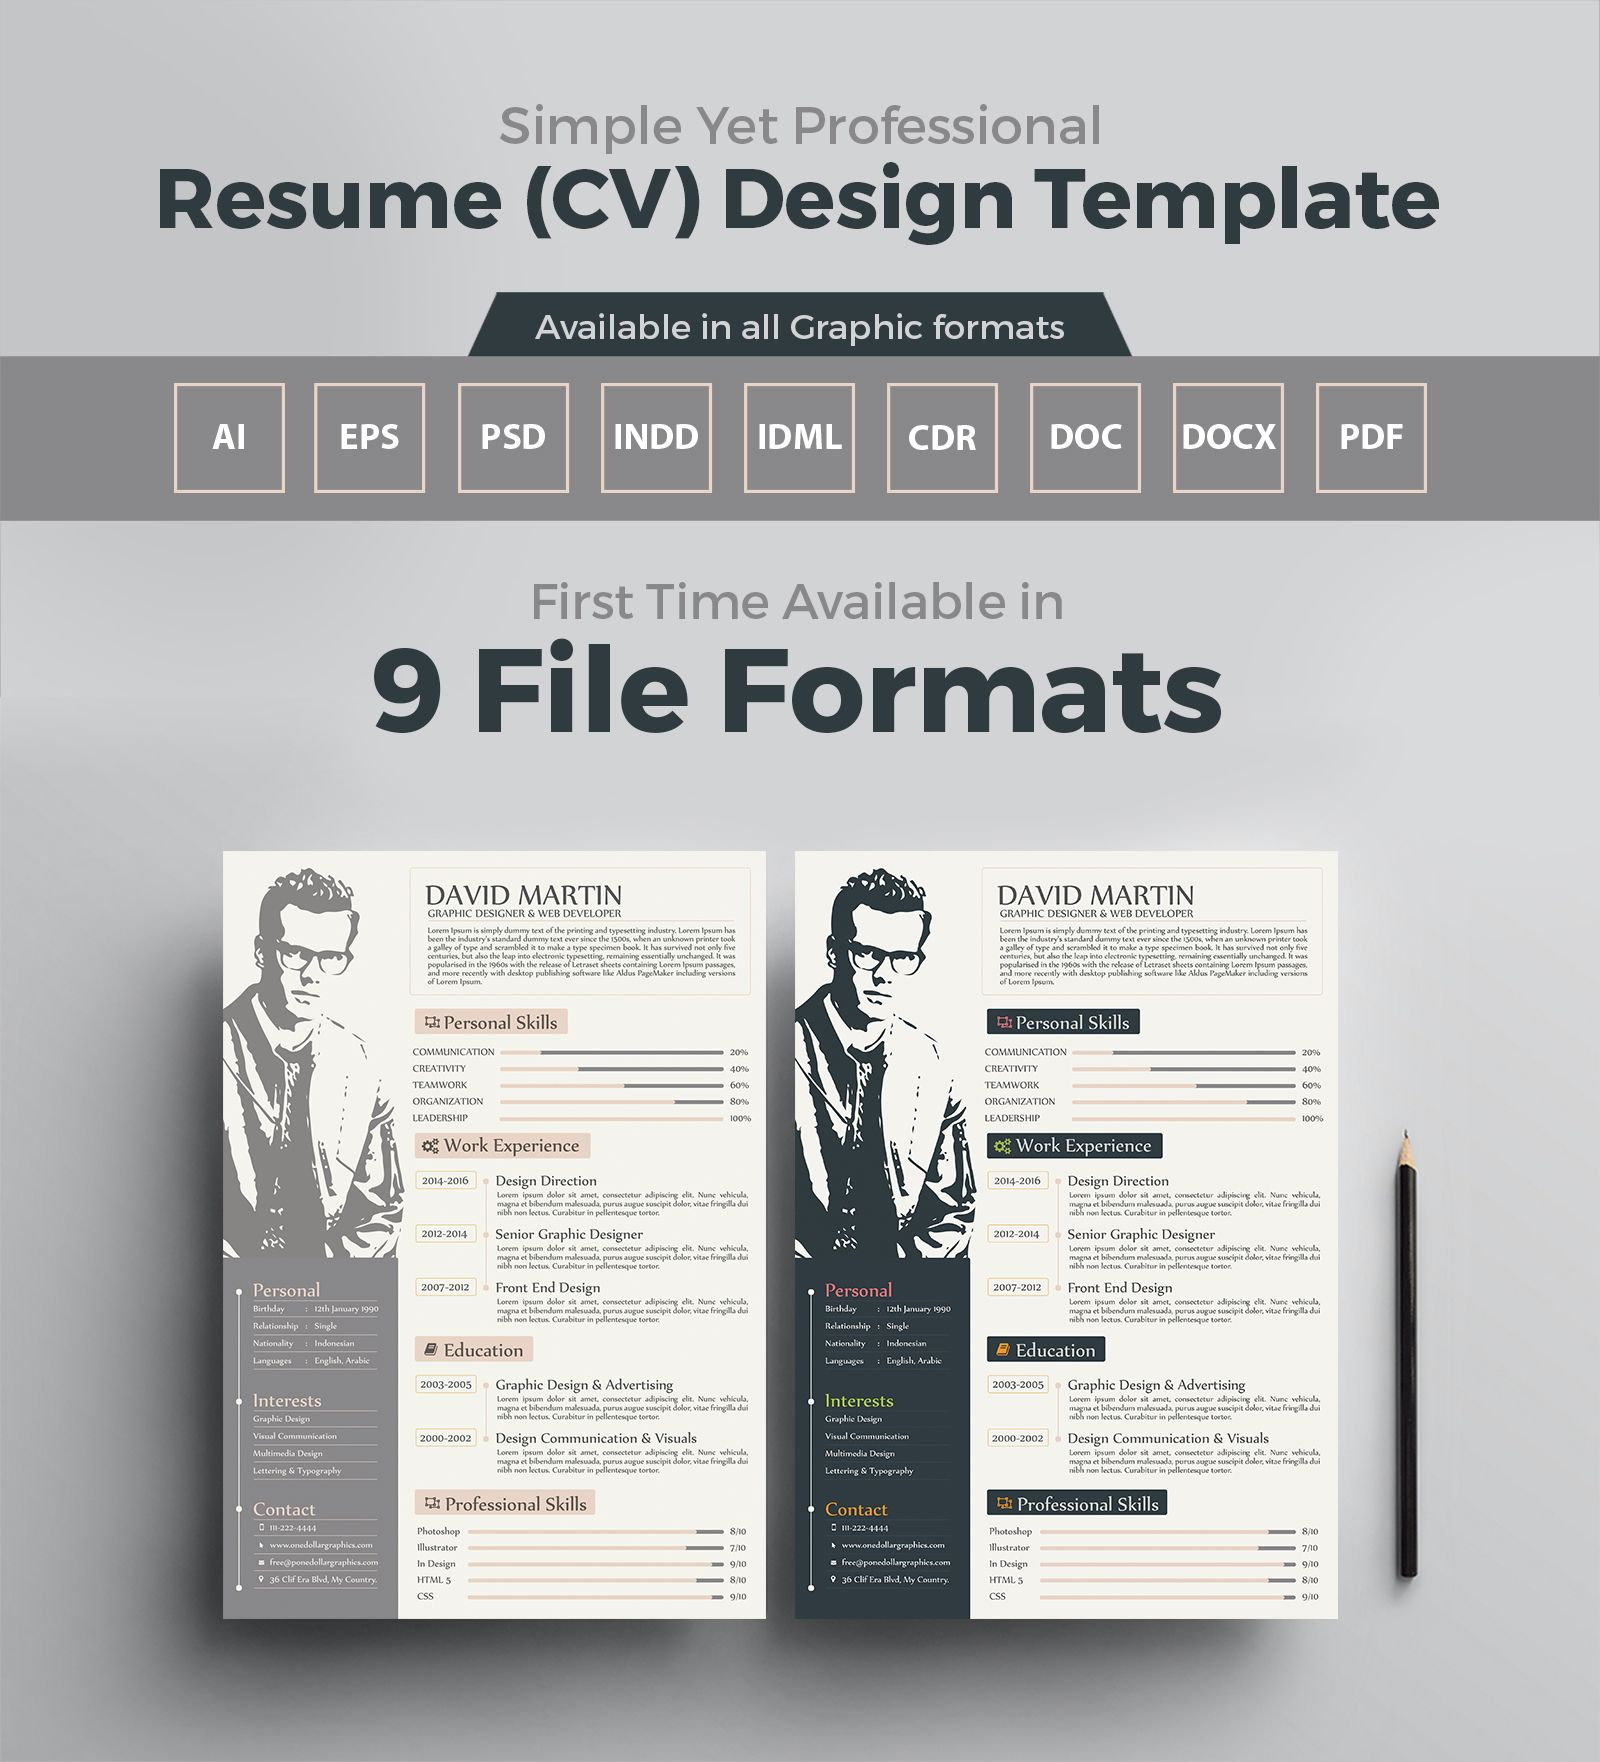 Graphic Design Resume Template Simpleyetprofessionalresumecvdesigntemplate3  Random Stuff